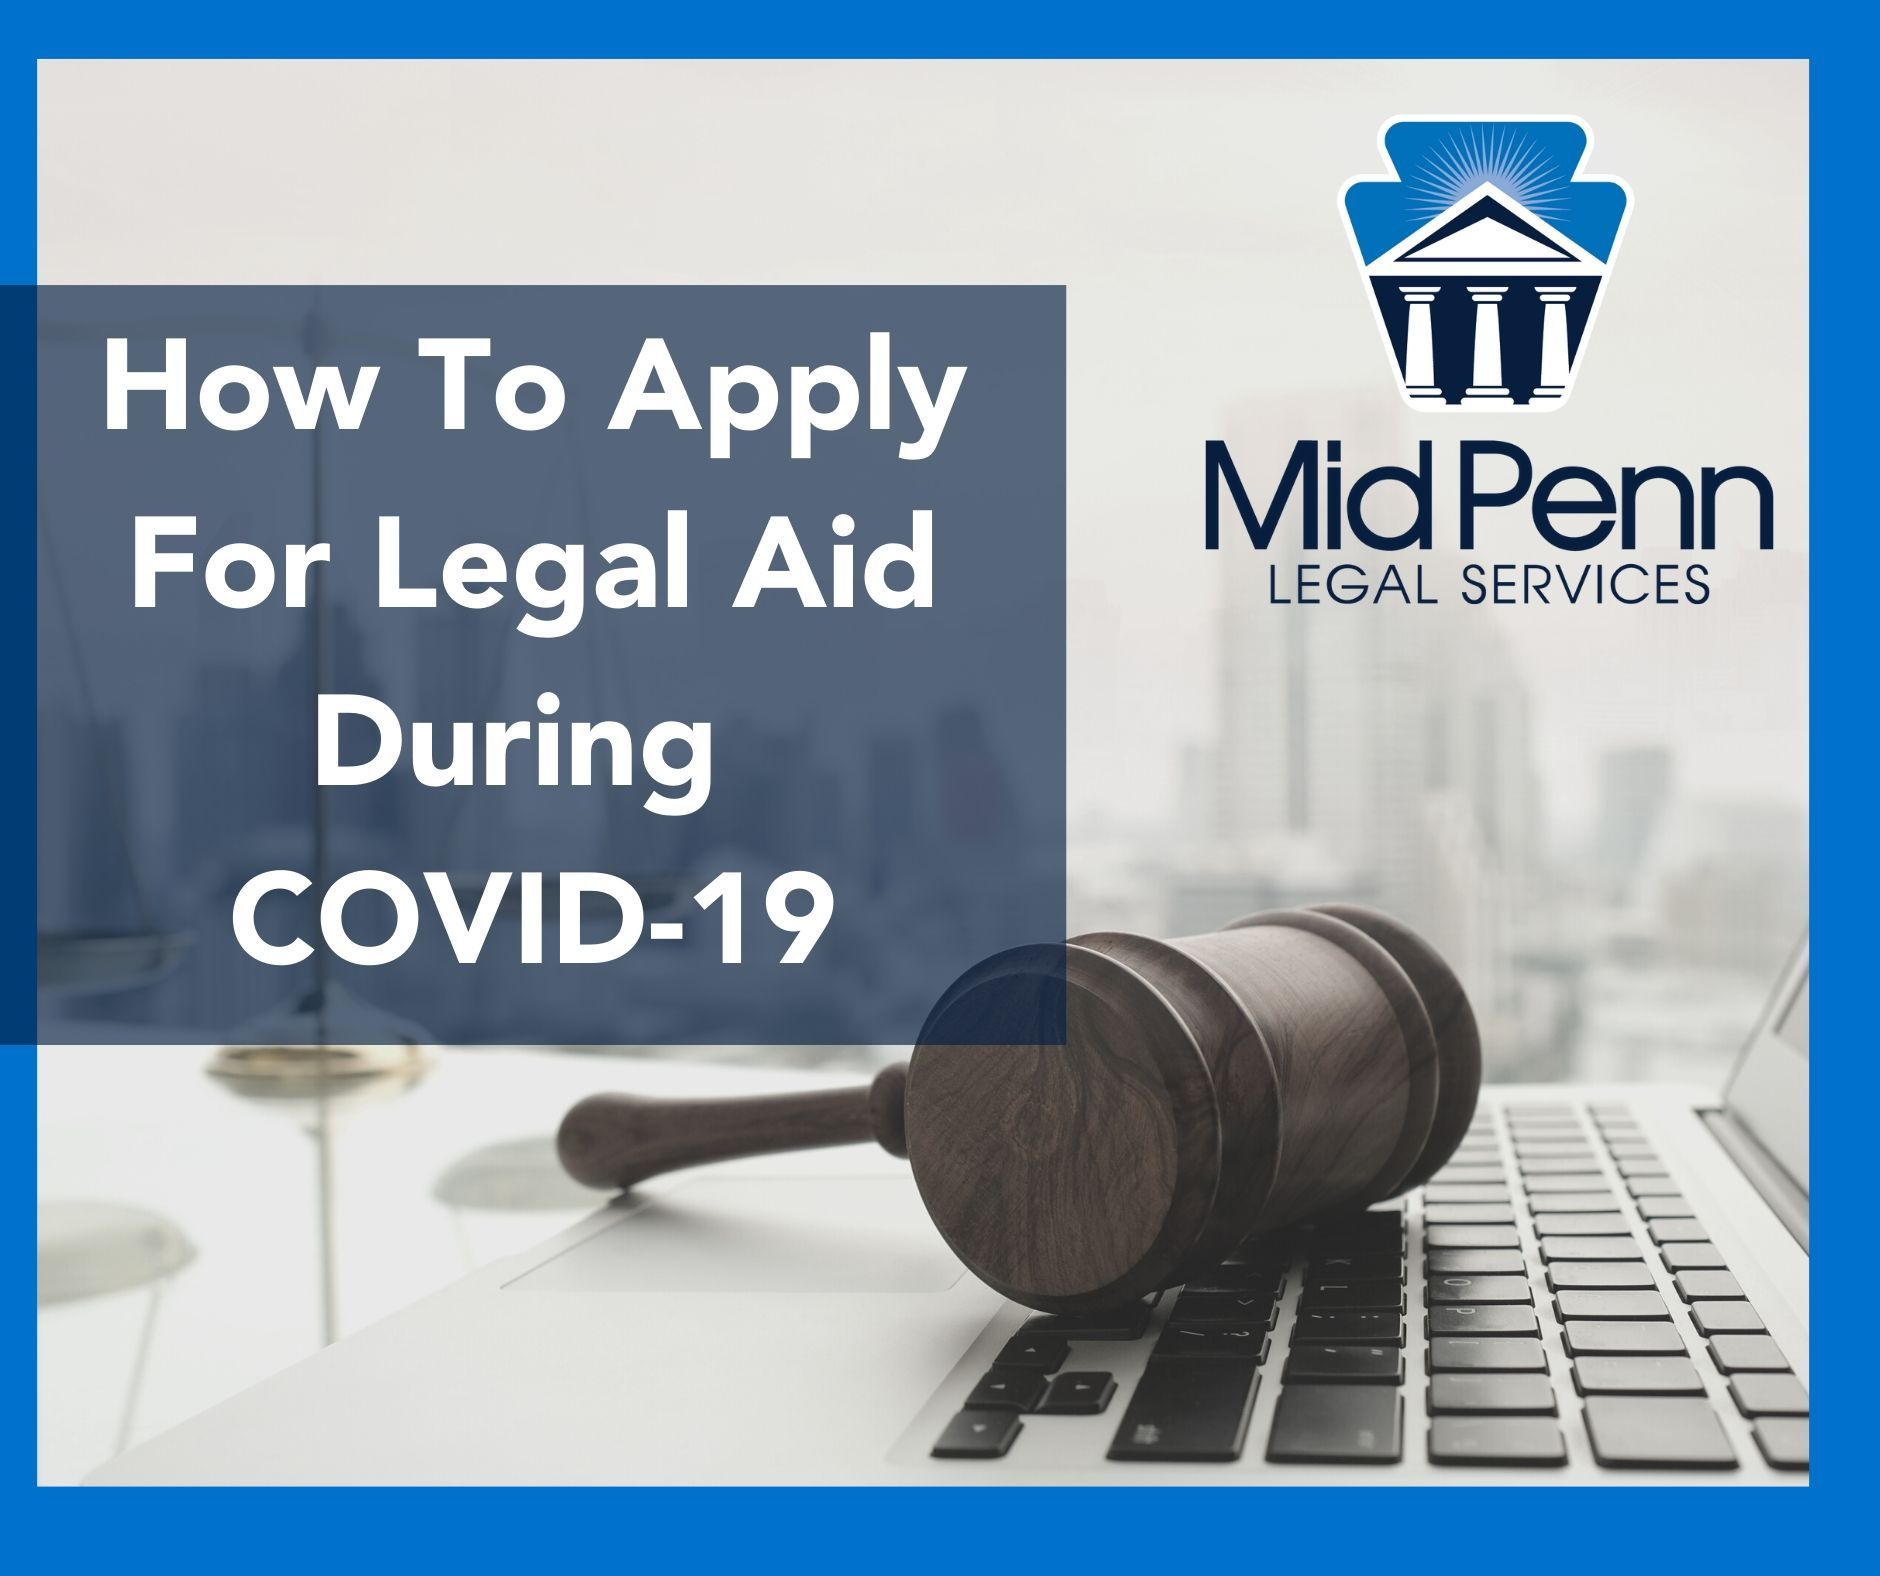 APPLY FOR LEGAL AID